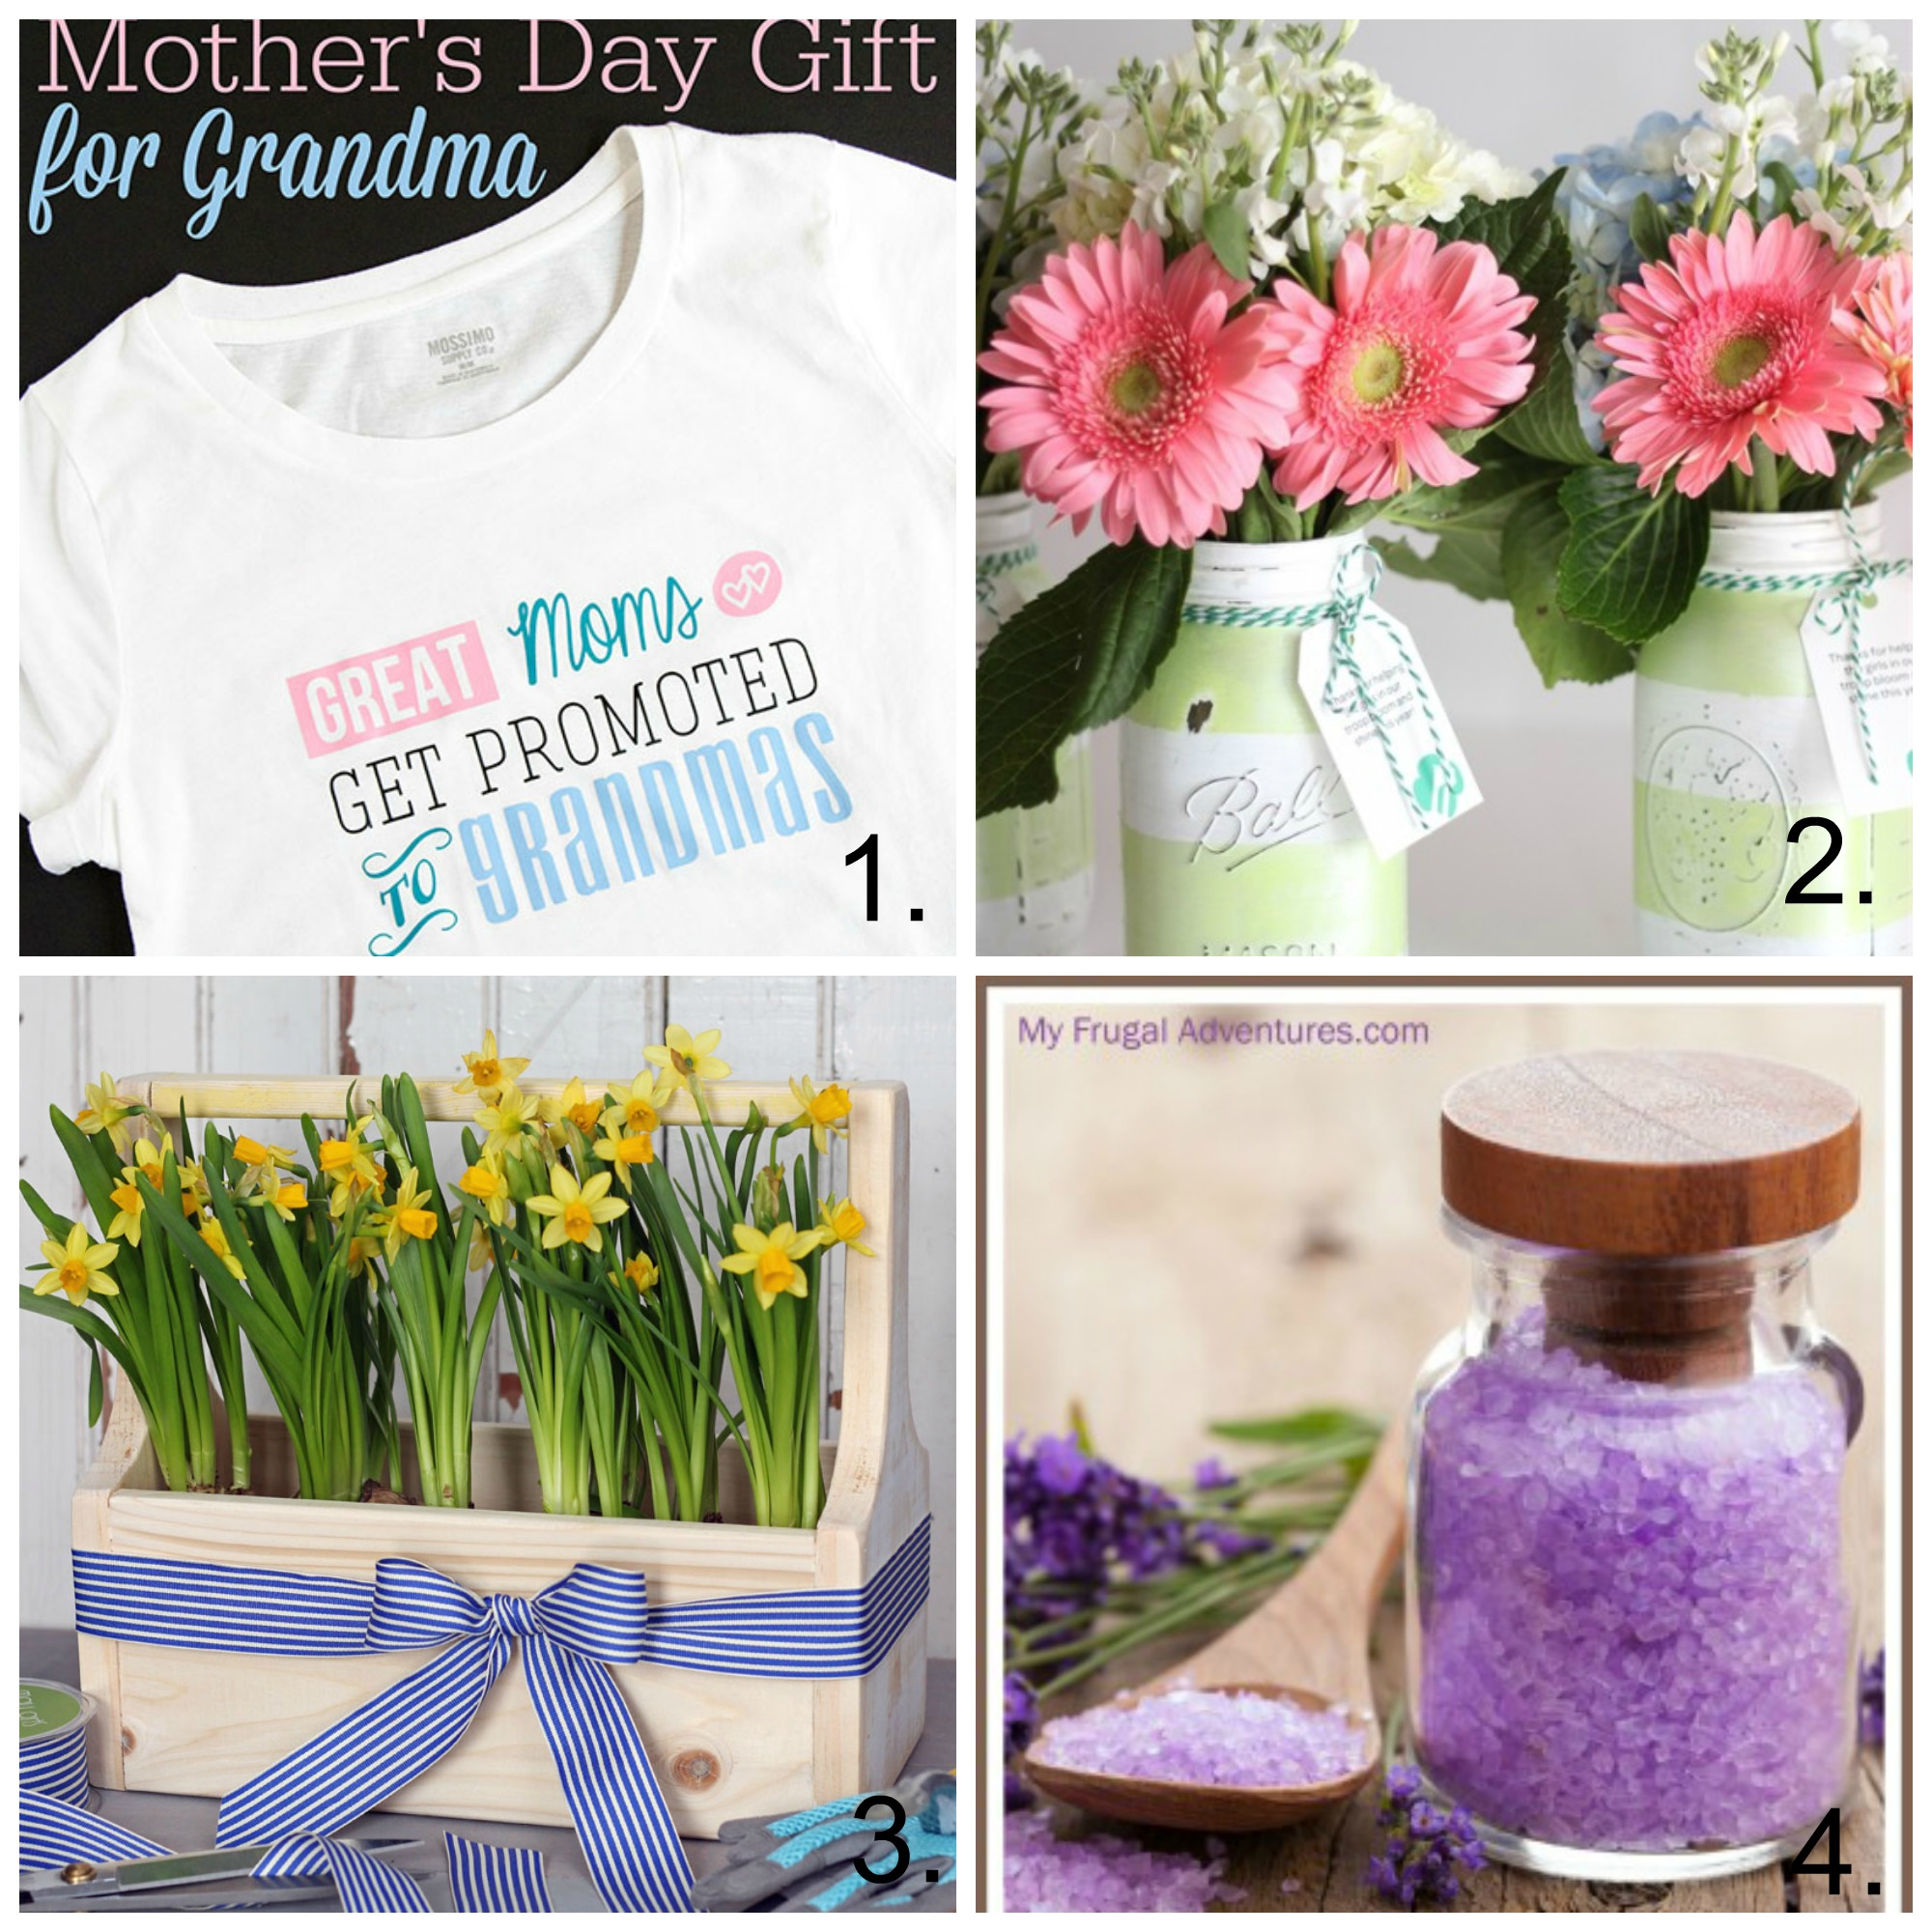 9b6499d6624 15 Thoughtful Mother s Day Gift Ideas - My Frugal Adventures